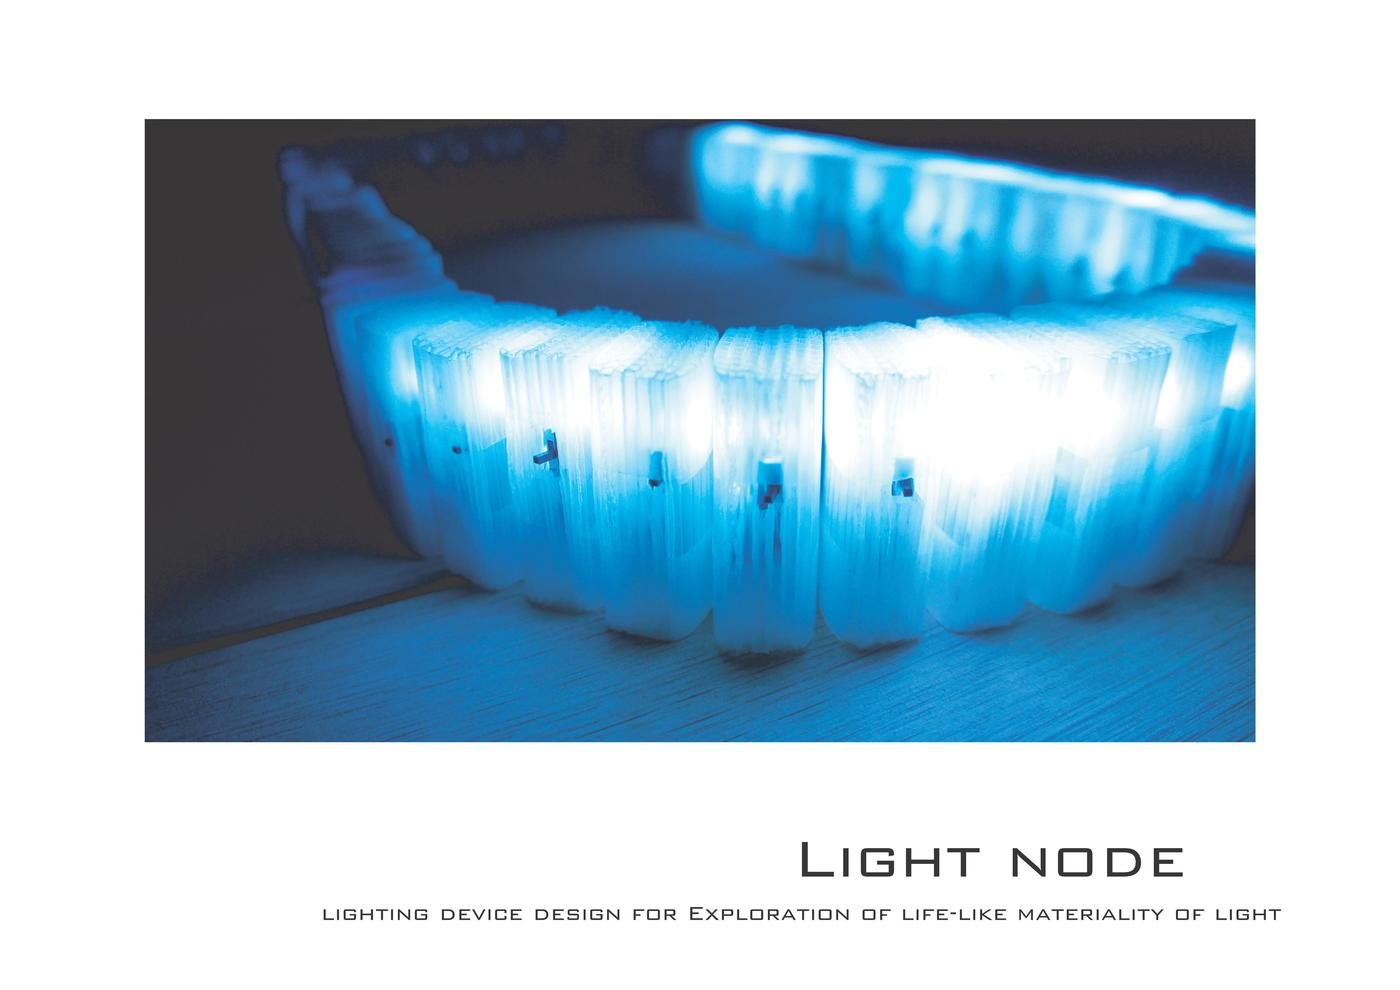 Light node